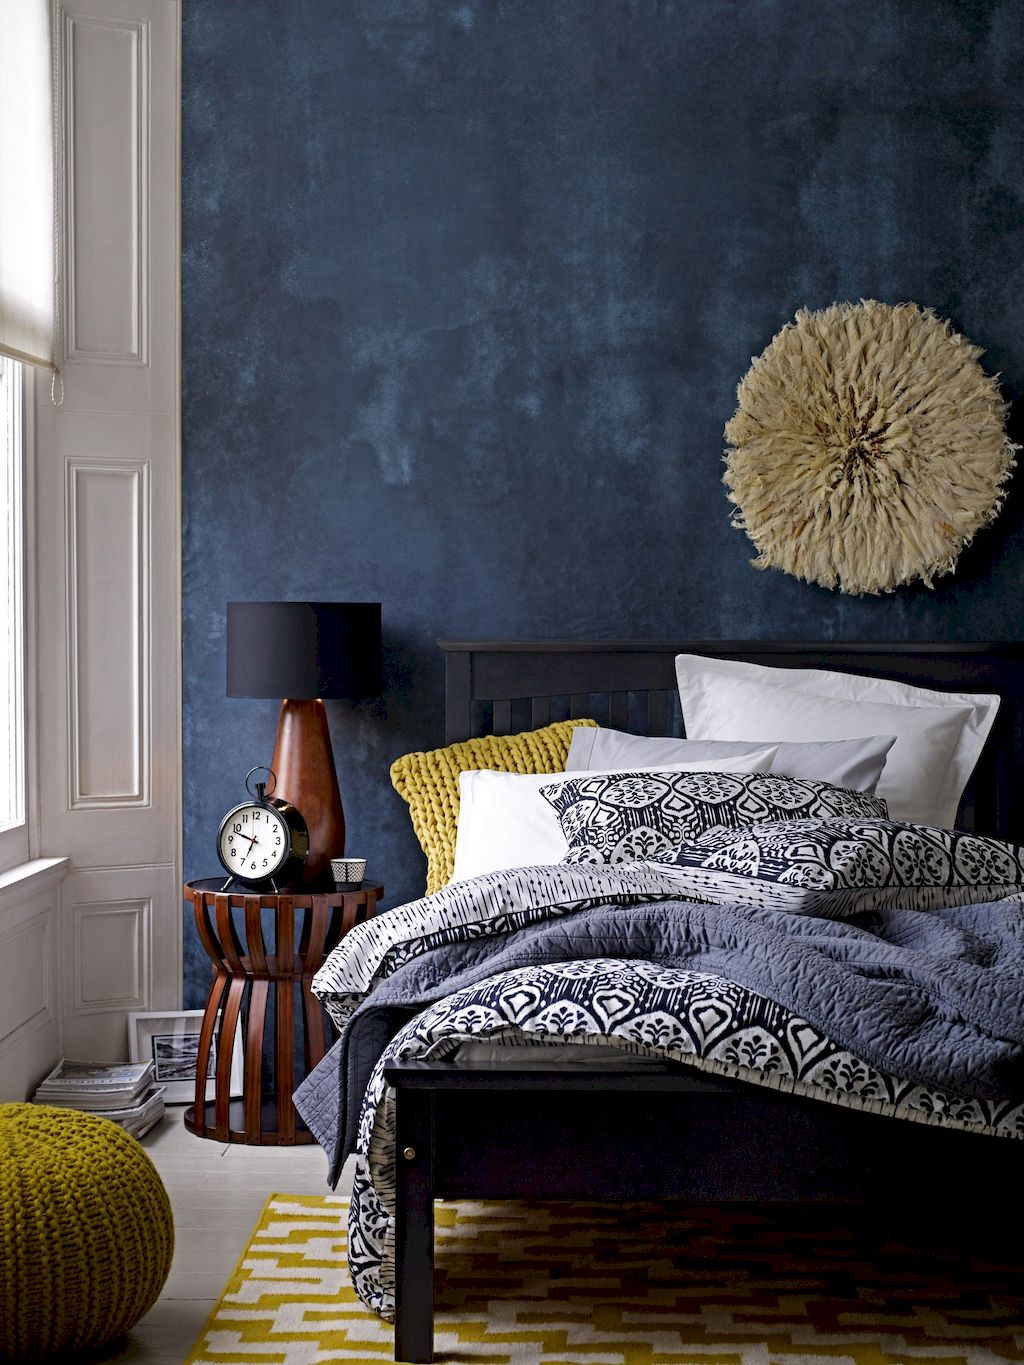 https://elonahome.com/wp-content/uploads/2018/12/Simple-Small-Bedroom-Ideas-with-Really-Cozy-Desorations-Part-7.jpg